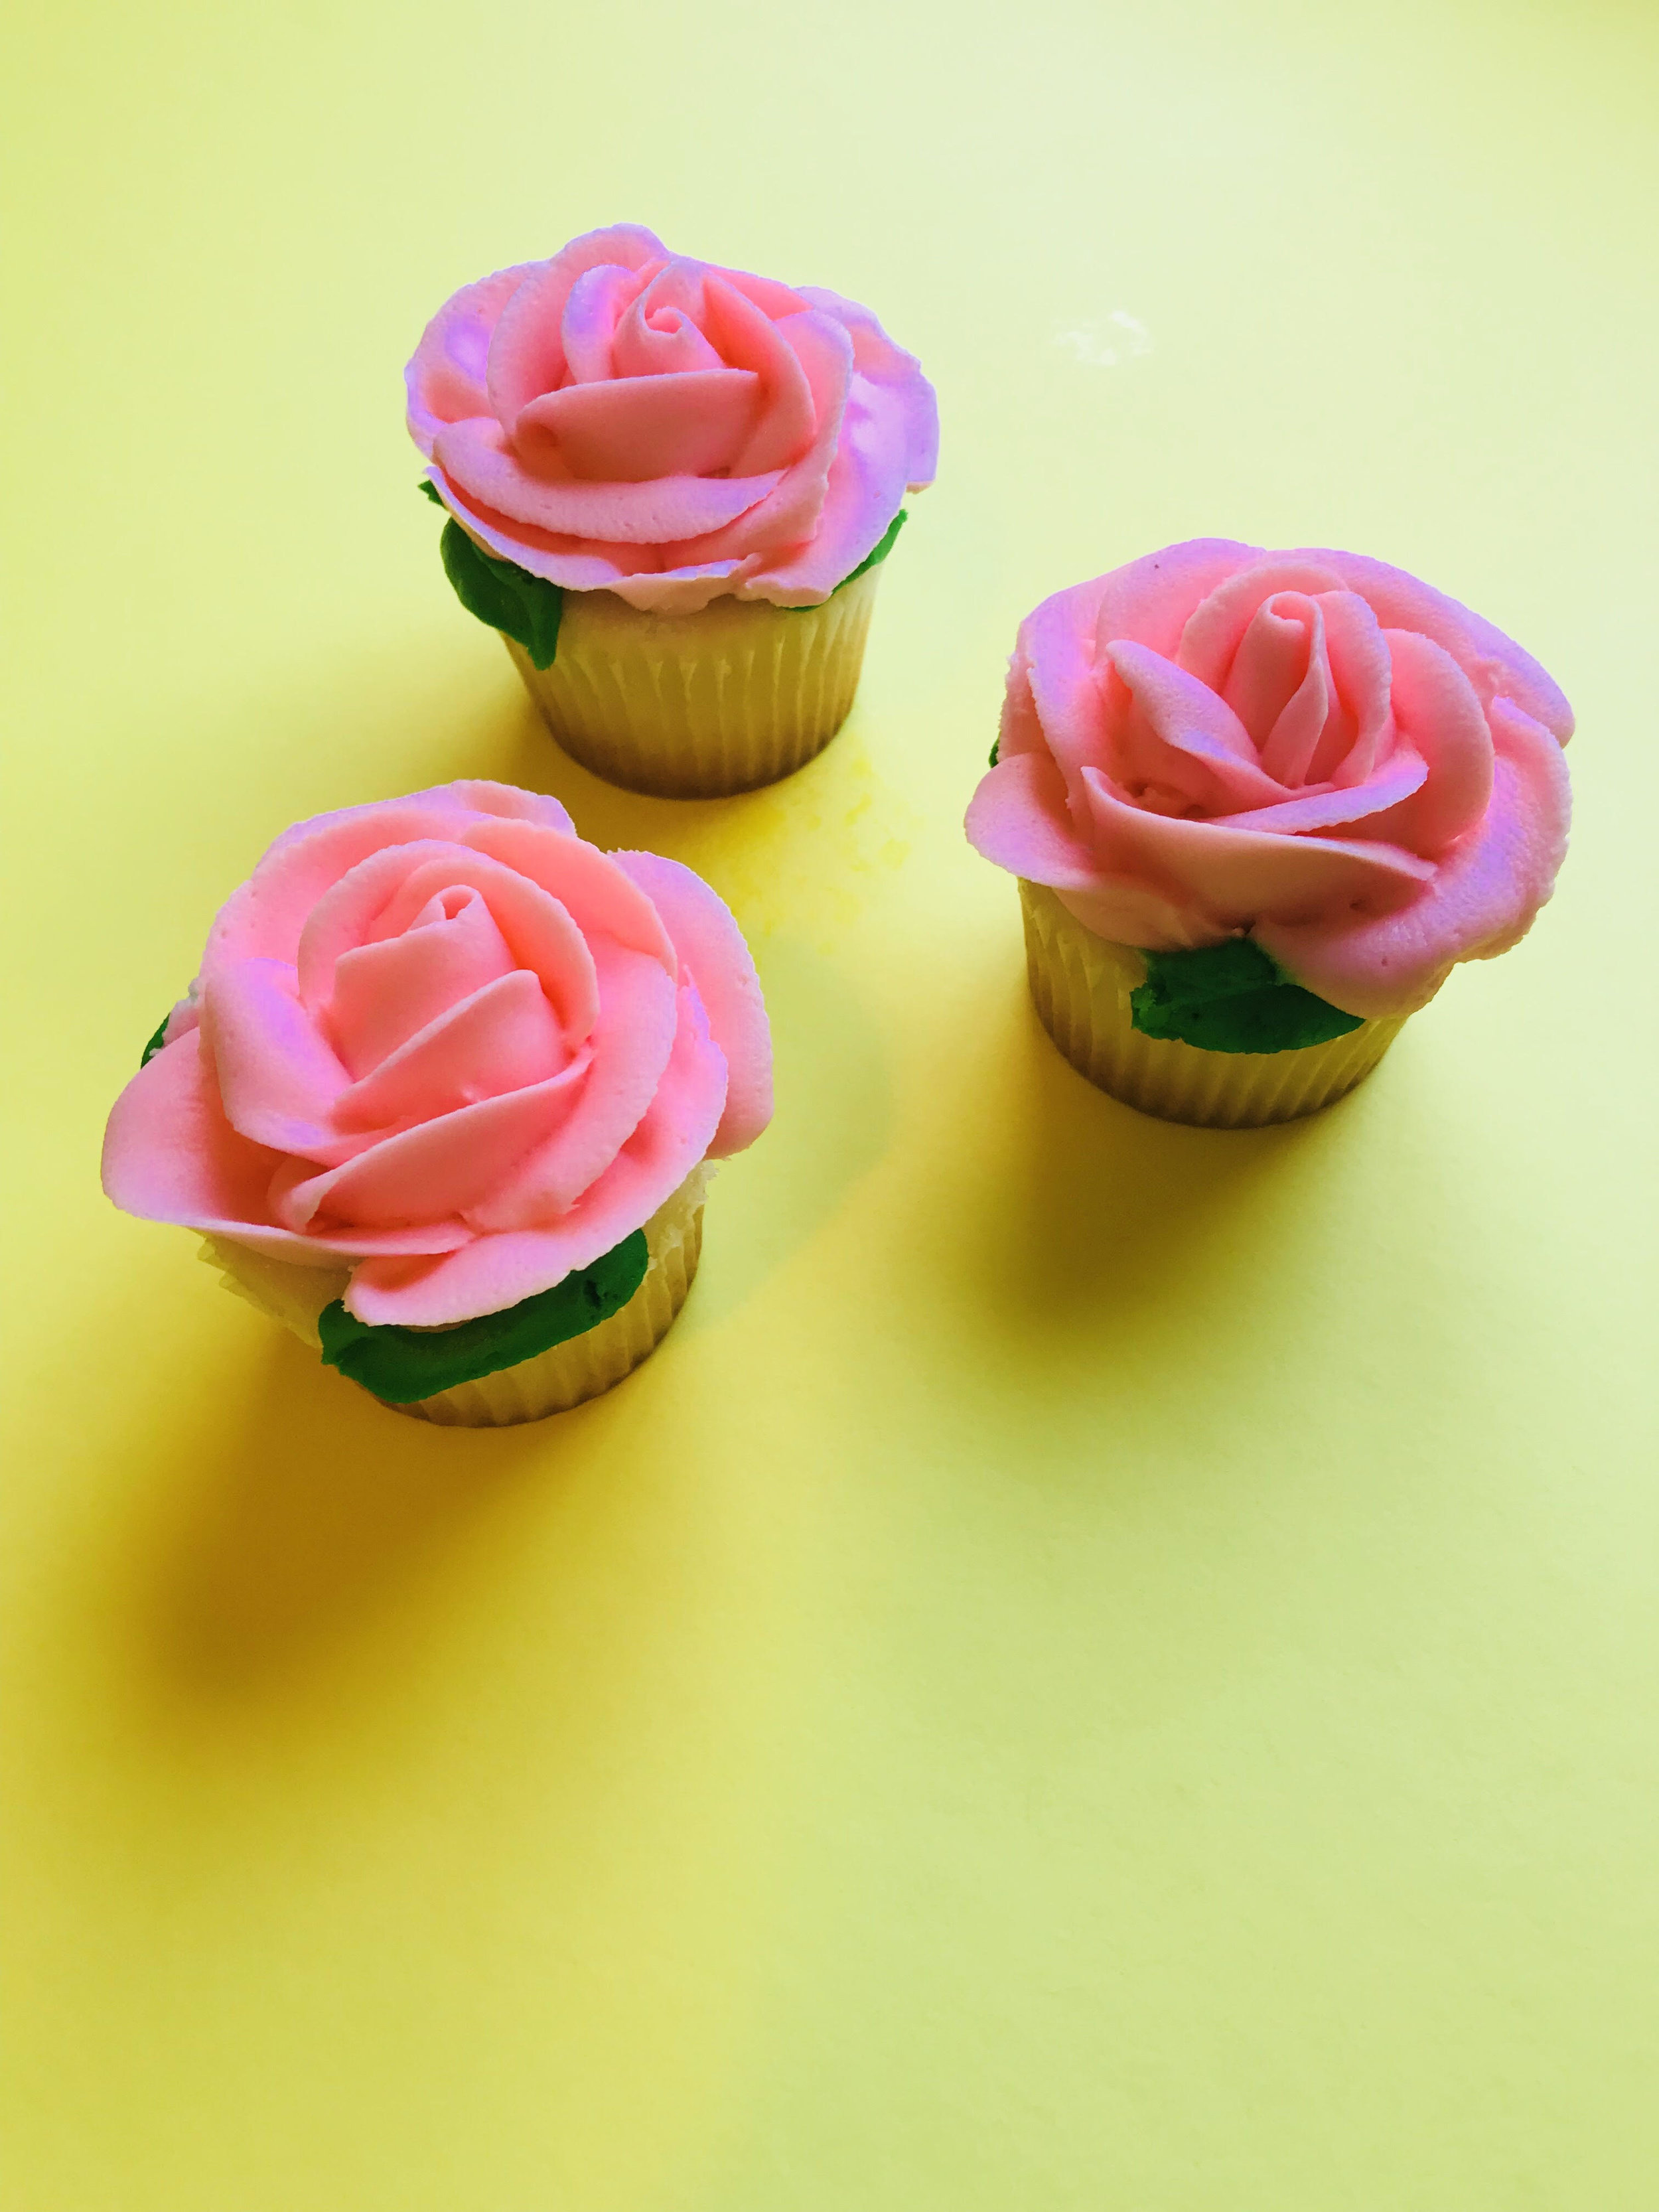 1. Rose Cupcakes - Rose cupcakes found at The Original Goodie Shop for $2.99 each. Which were perfect for watching The Bachelorette premiere with some friends on Monday.